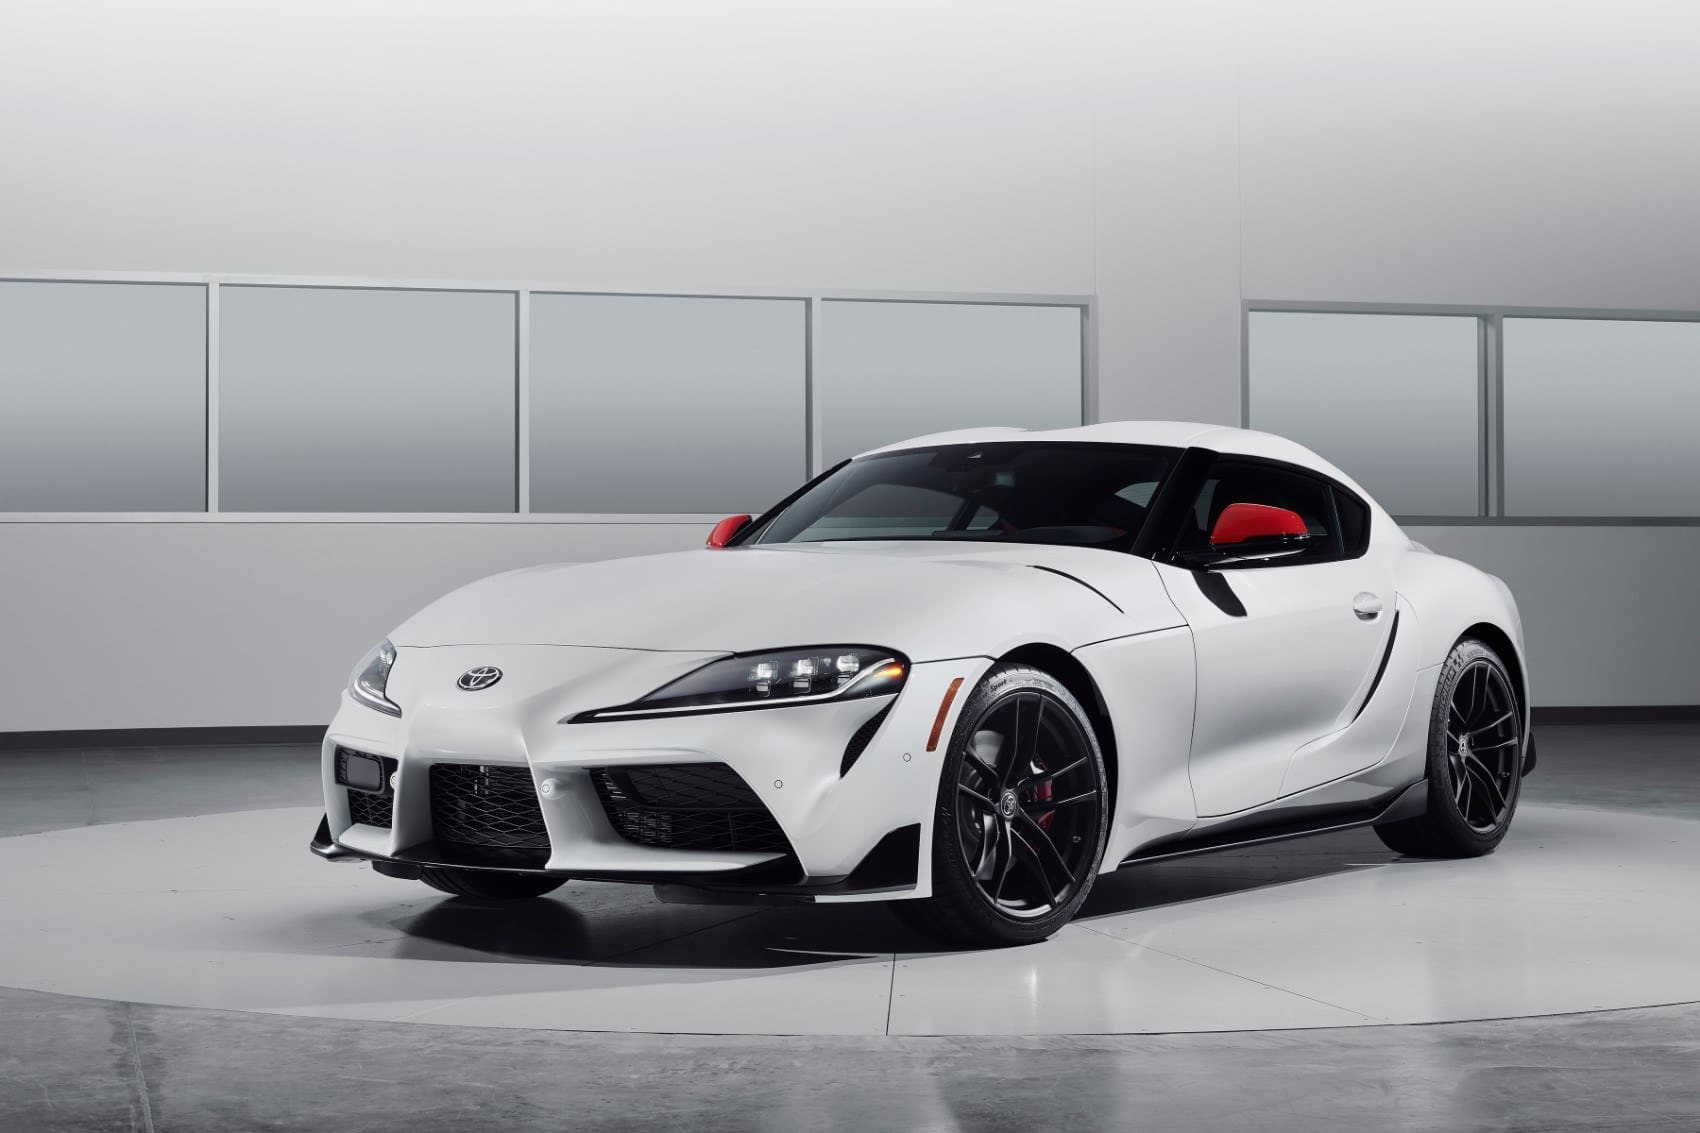 2020 Toyota GR Supra Launch Edition.